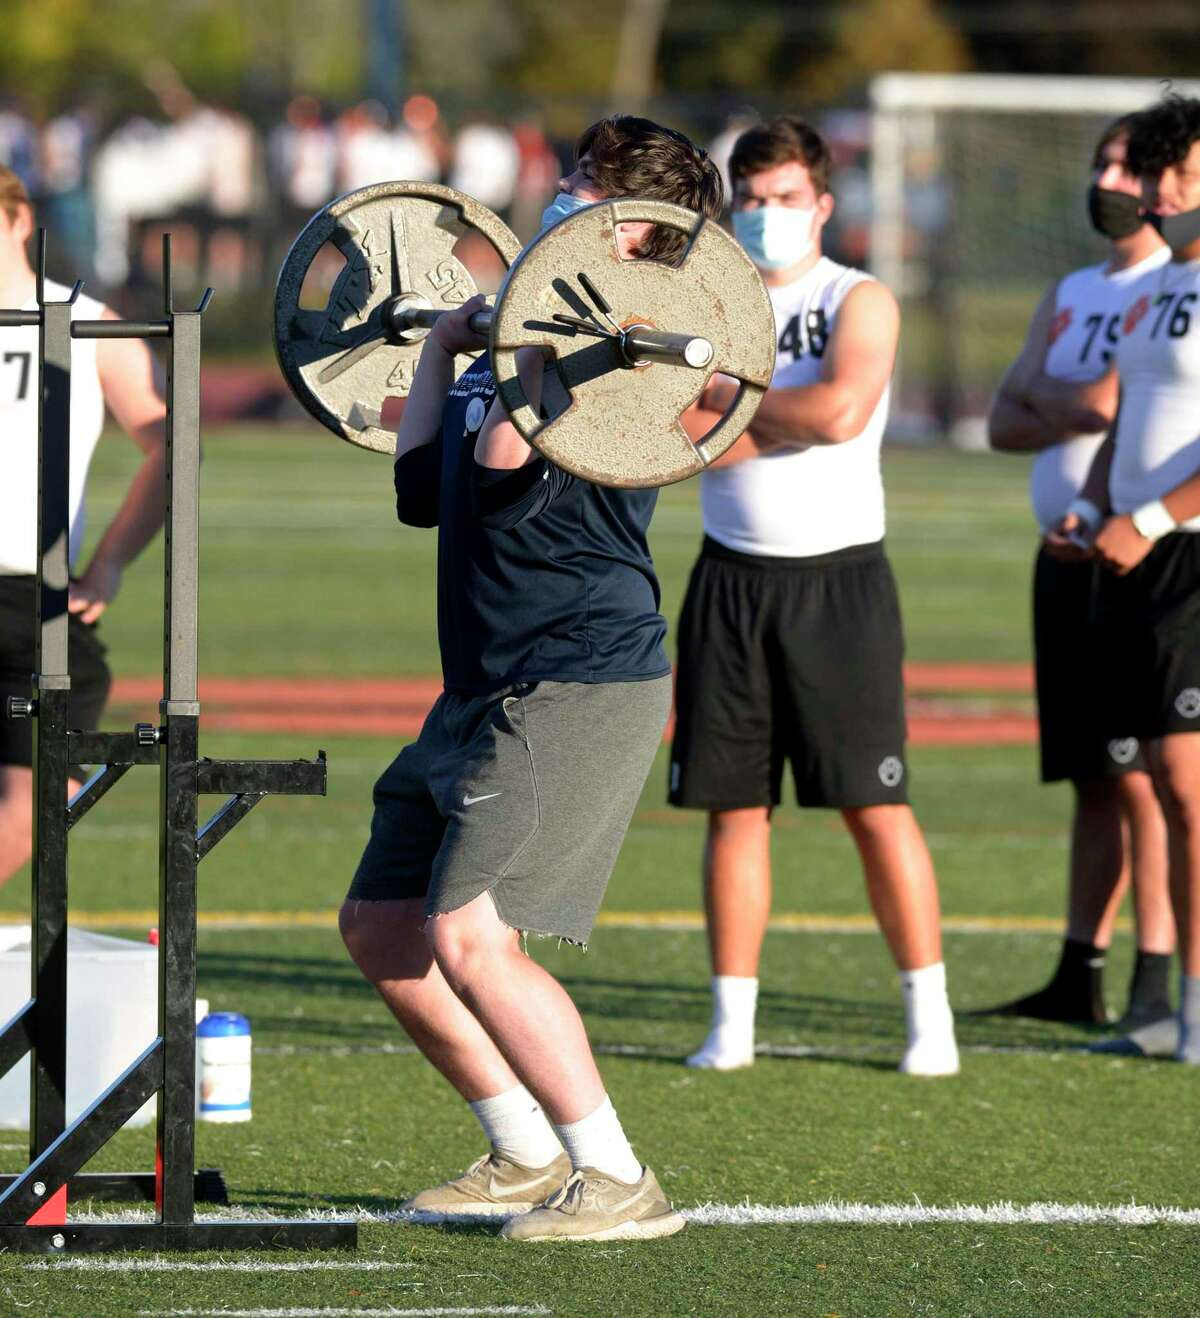 Wilton's Eddie Keller competes in the lineman challenge overhead press during boys football, Wilton and Ridgefield high schools. It included the lineman challenge and seven on seven football. Friday, October 2, 2020, at Ridgefield High School, Ridgefield, Conn.